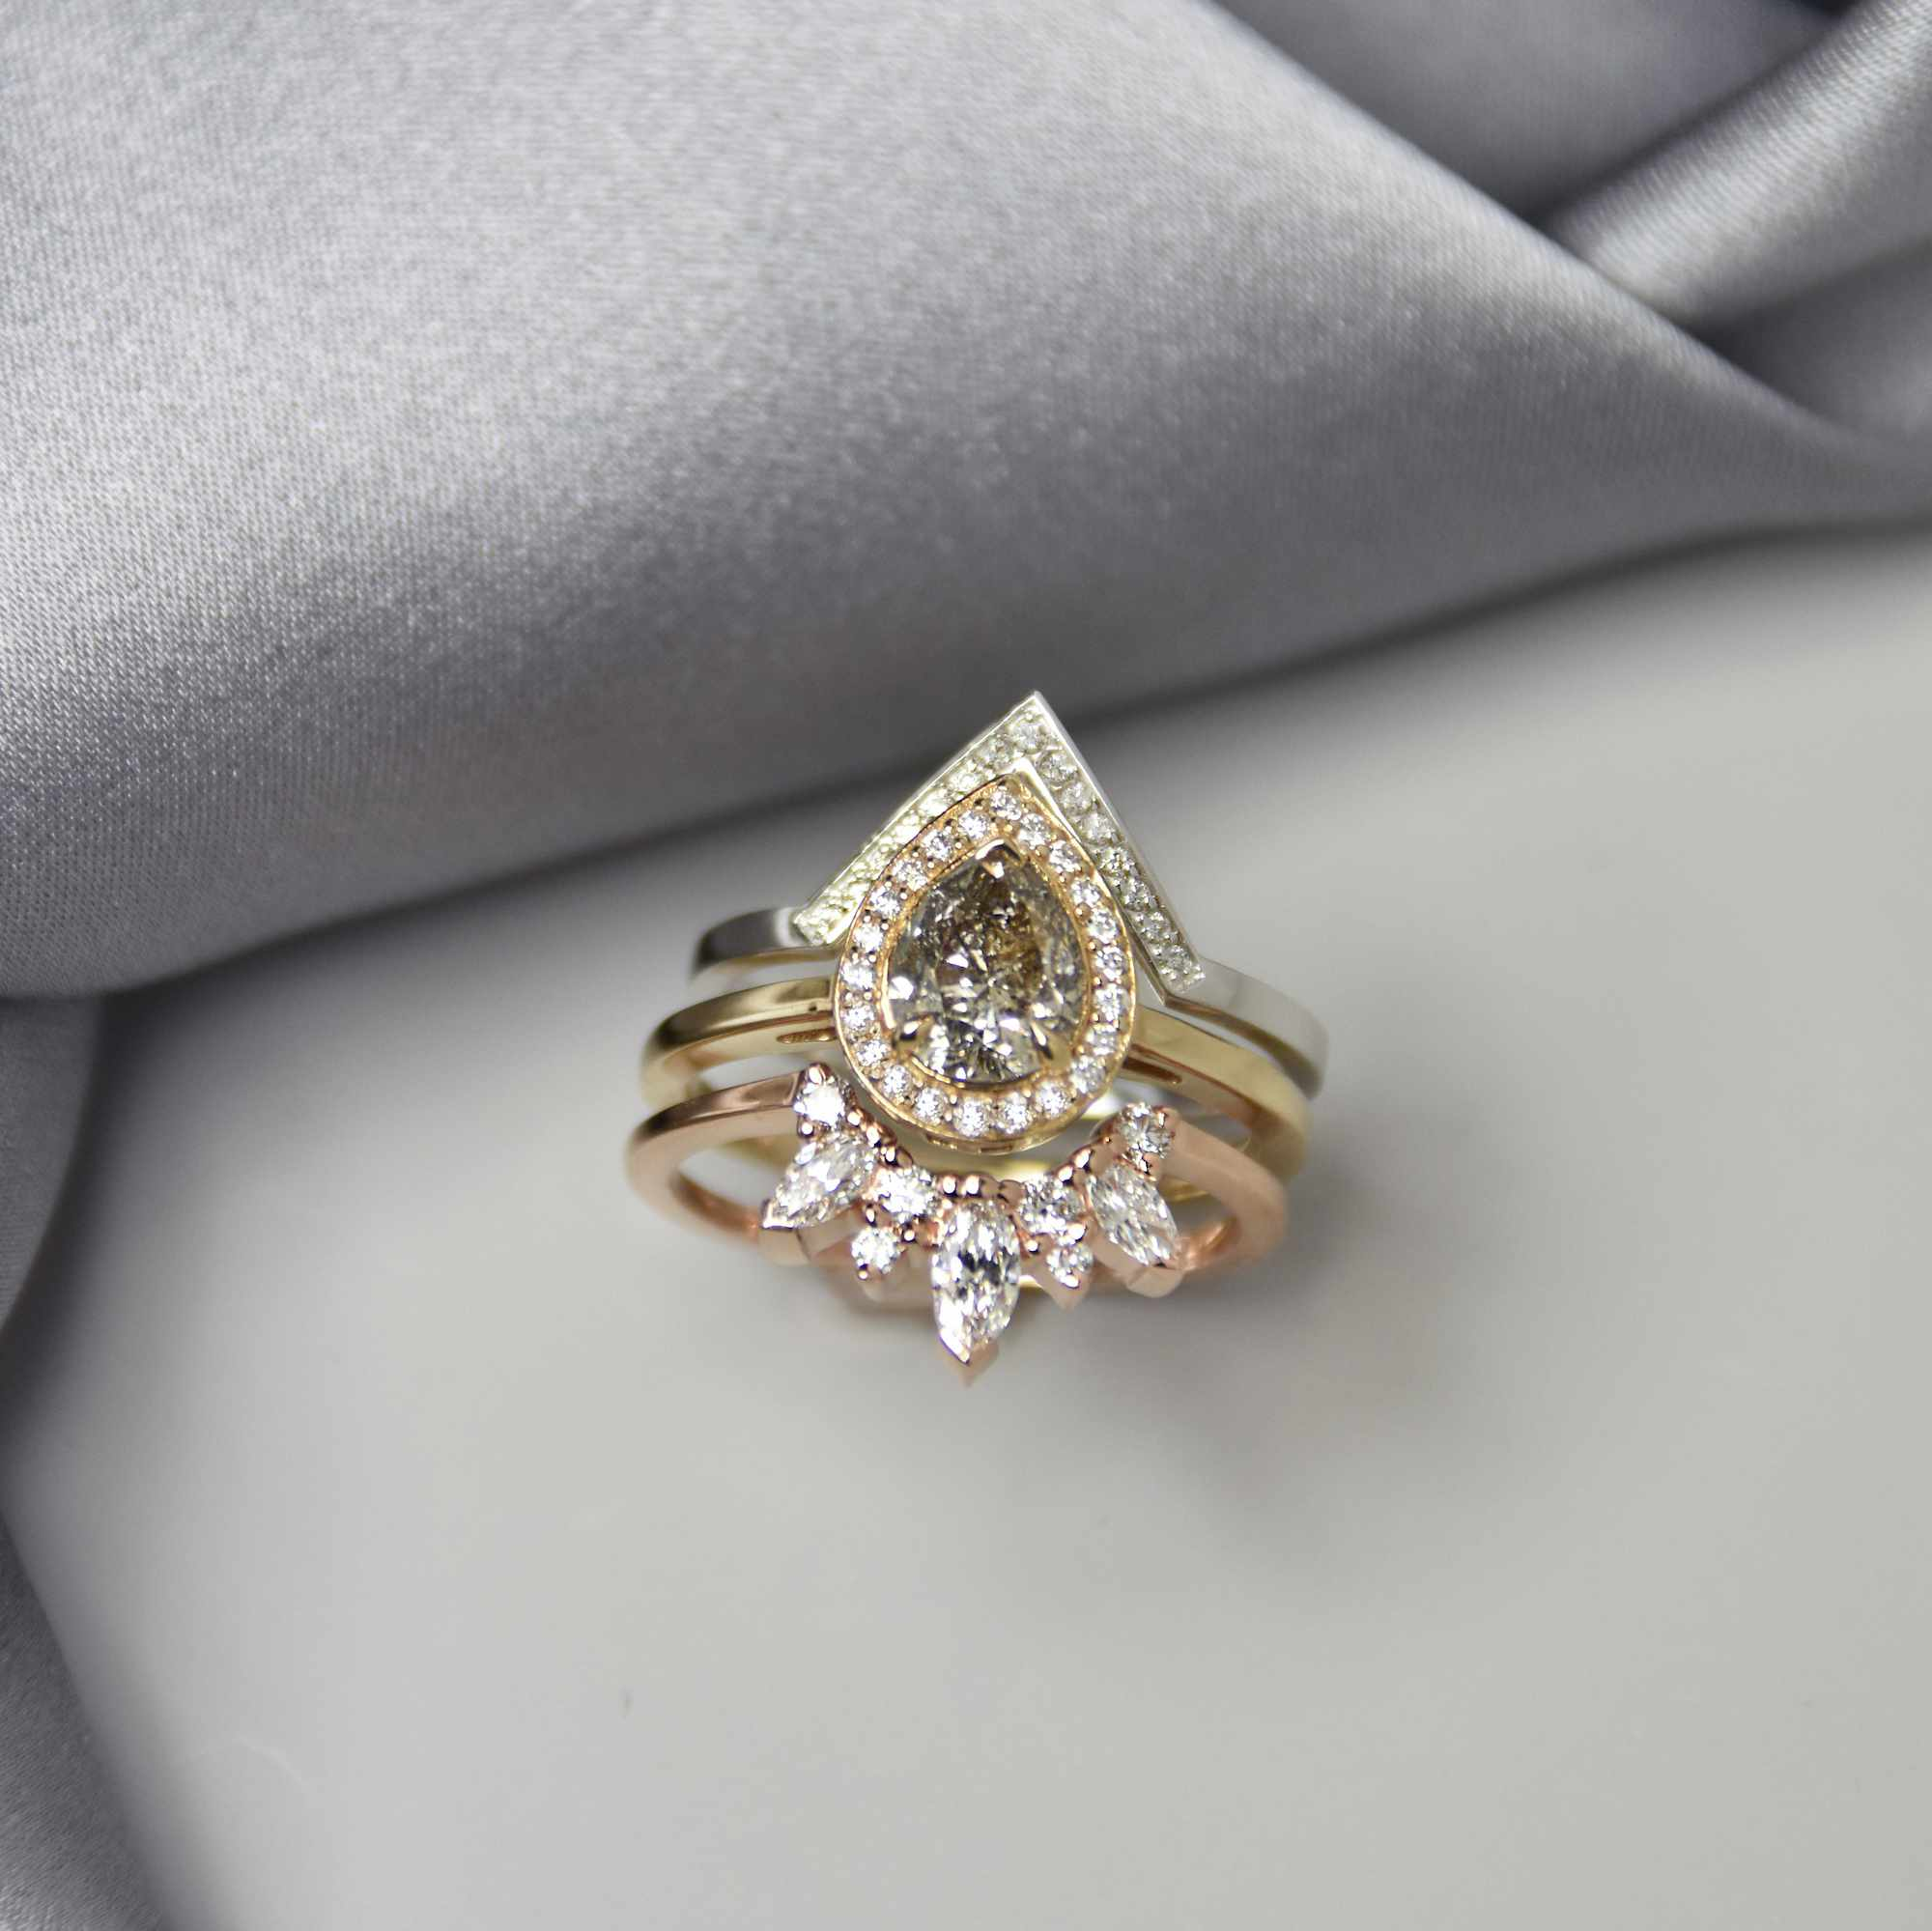 Stack of three rings with a pear shape diamond in the center